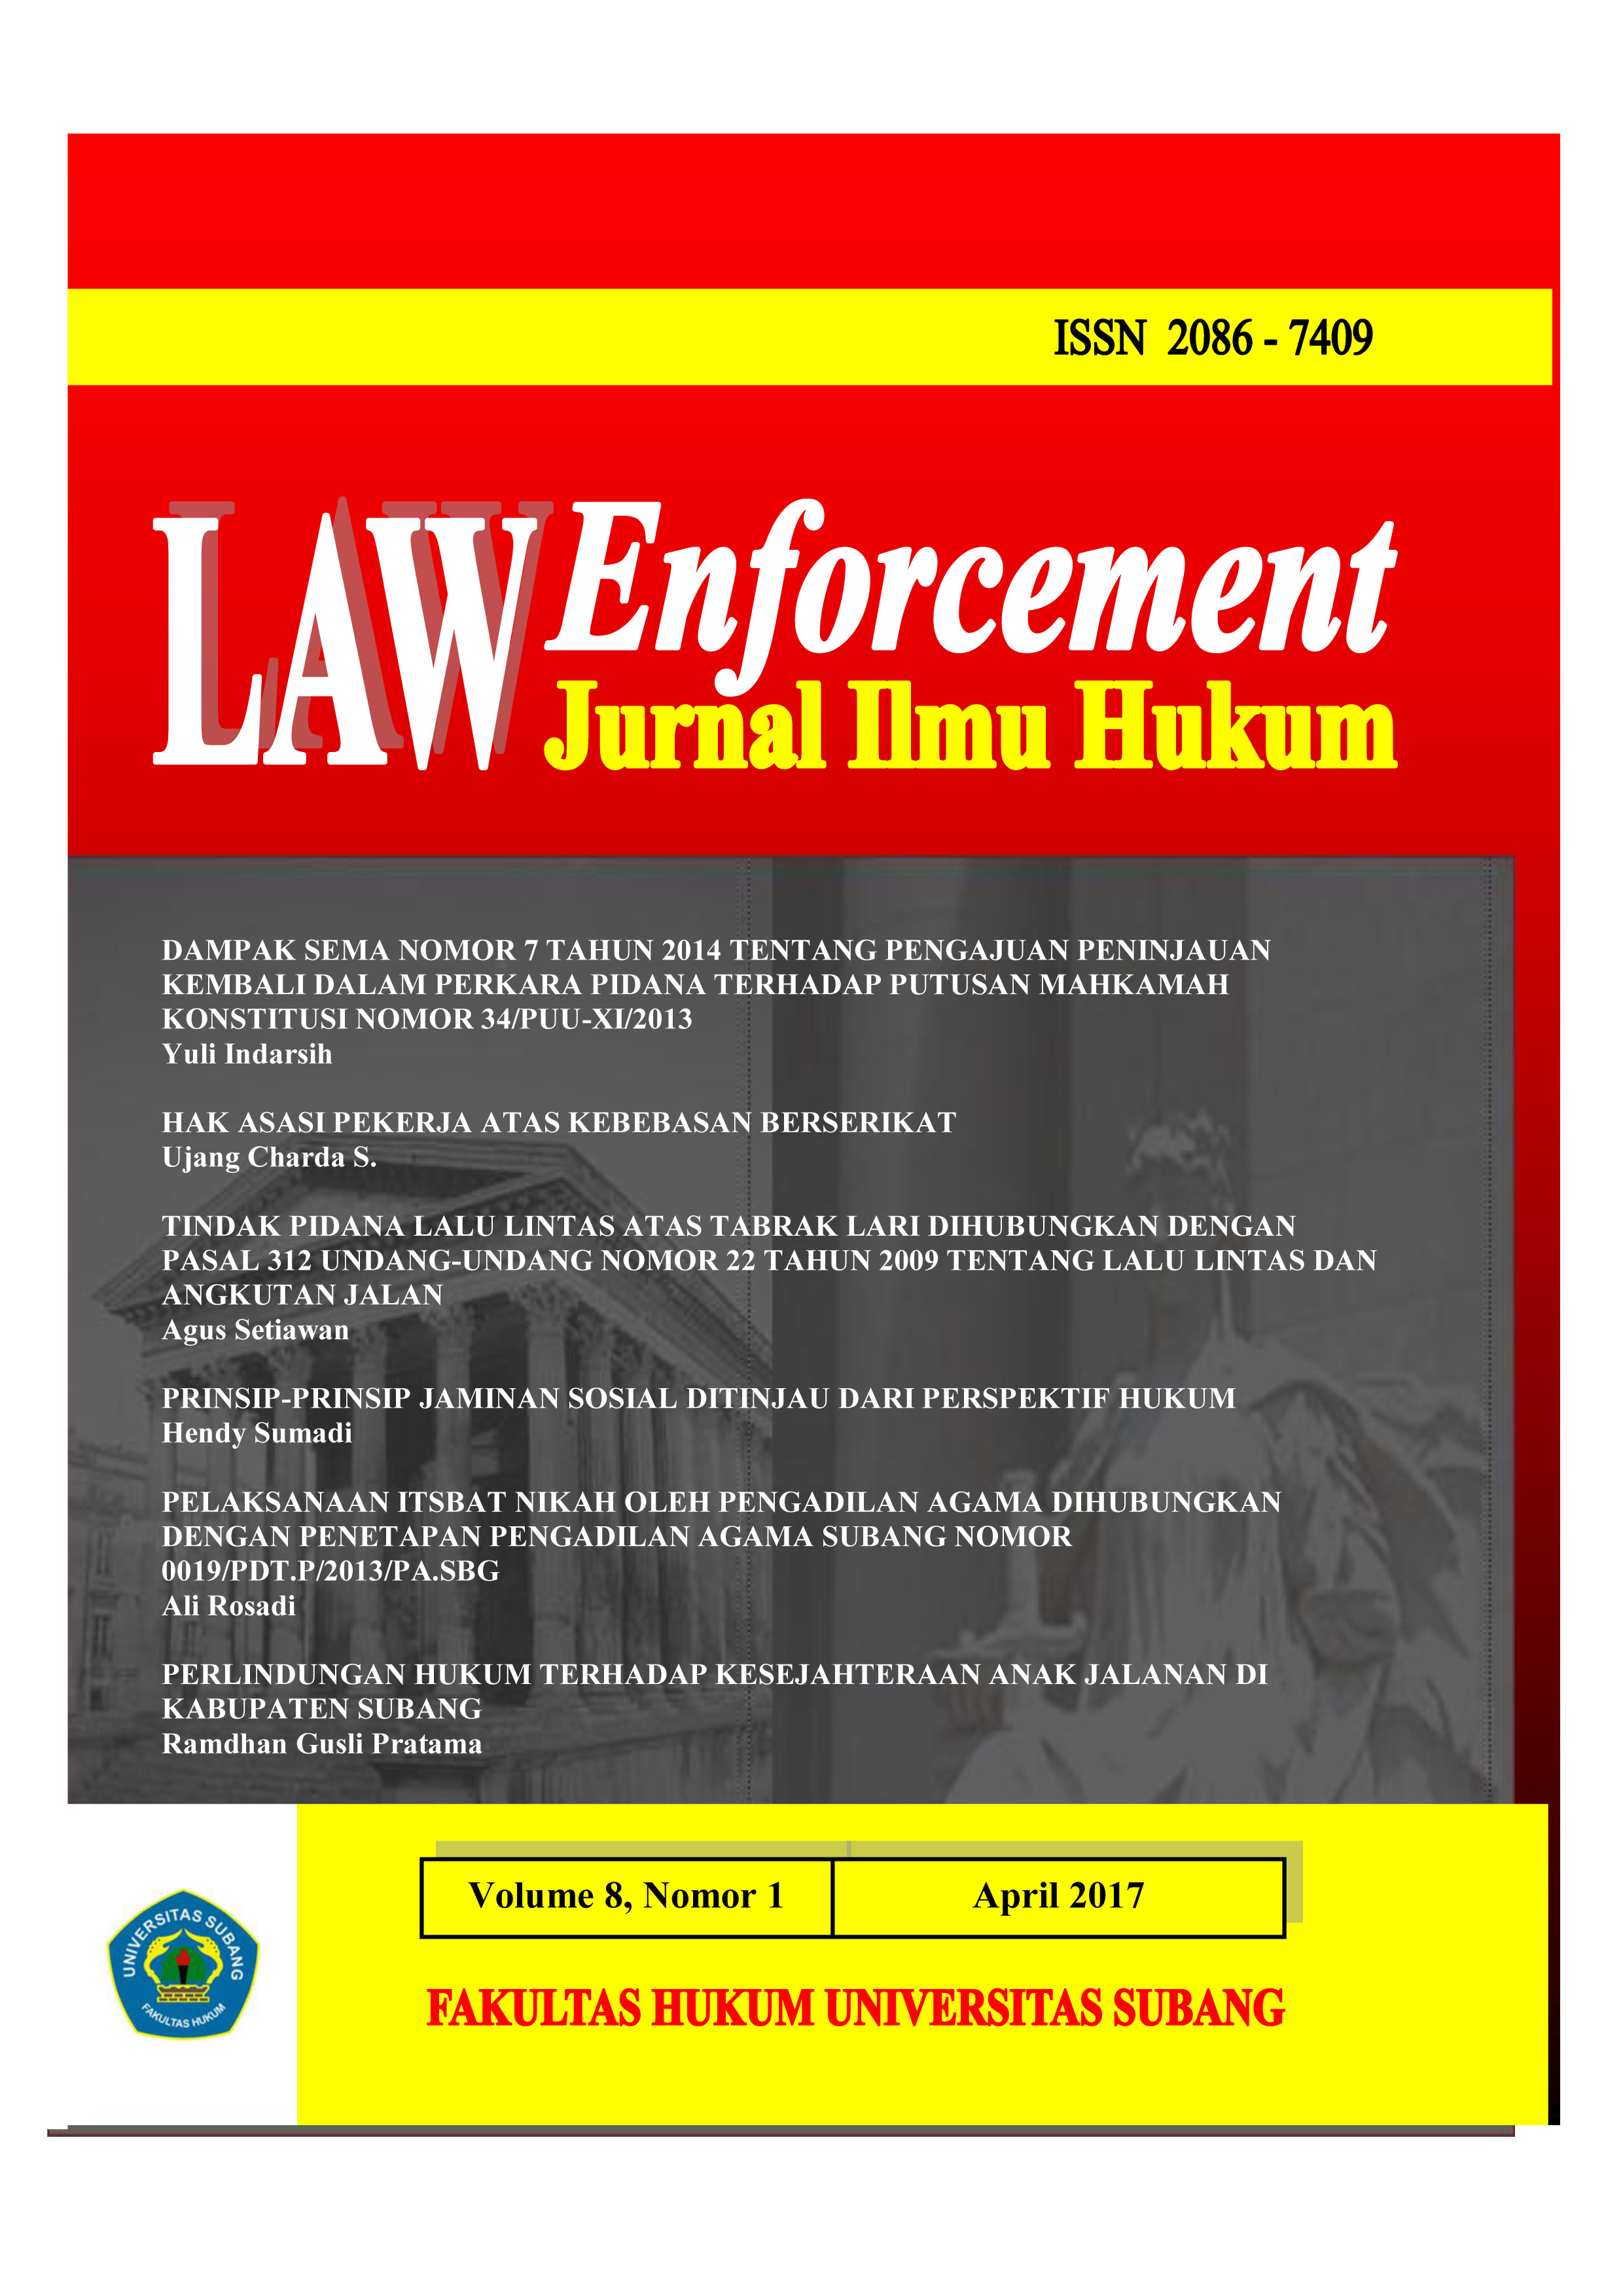 View Vol. 8 No. 1 (2017): LAW Enforcement : JURNAL ILMU HUKUM